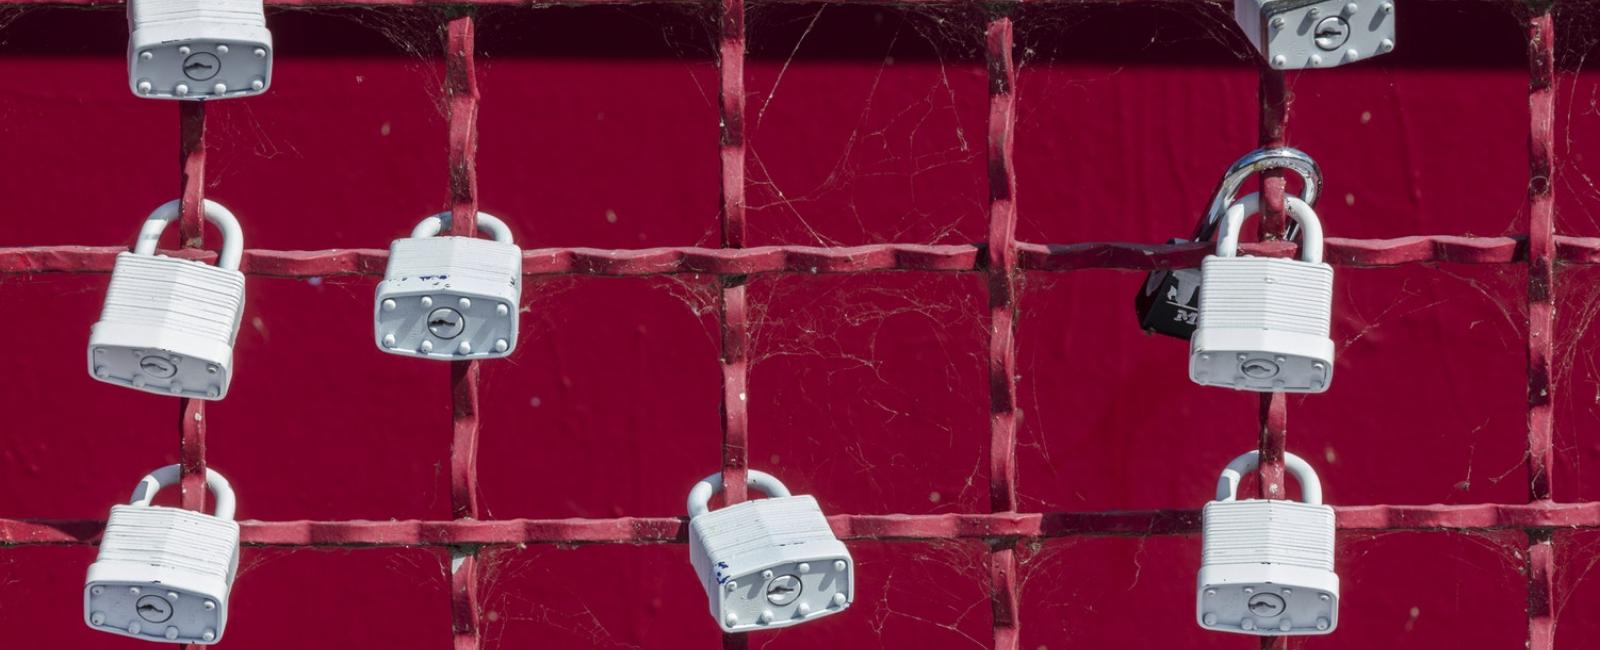 Locks on a red fence